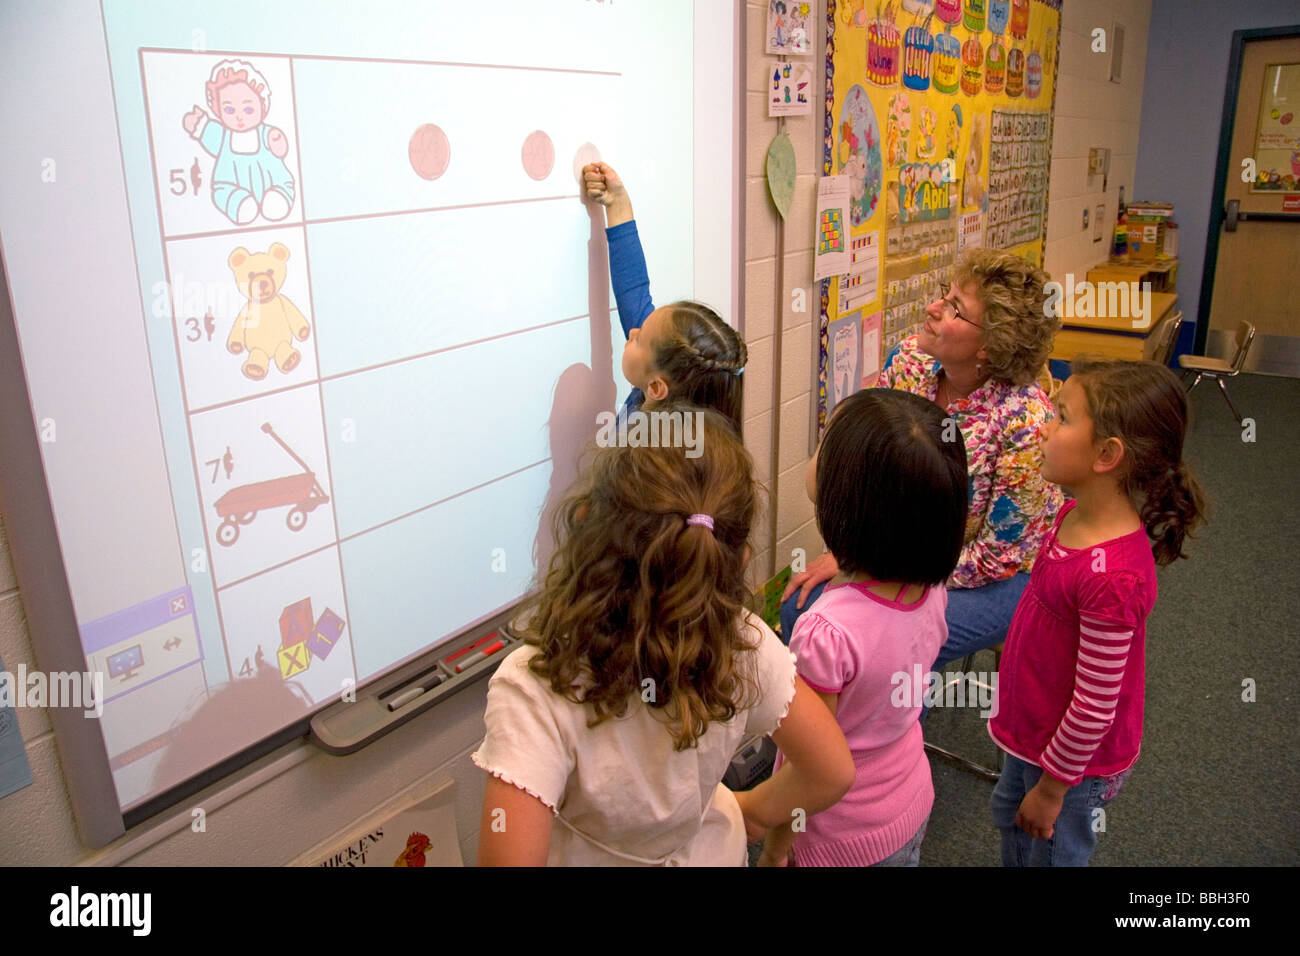 Kindergarten Students Use An Interactive Whiteboard In The Classroom